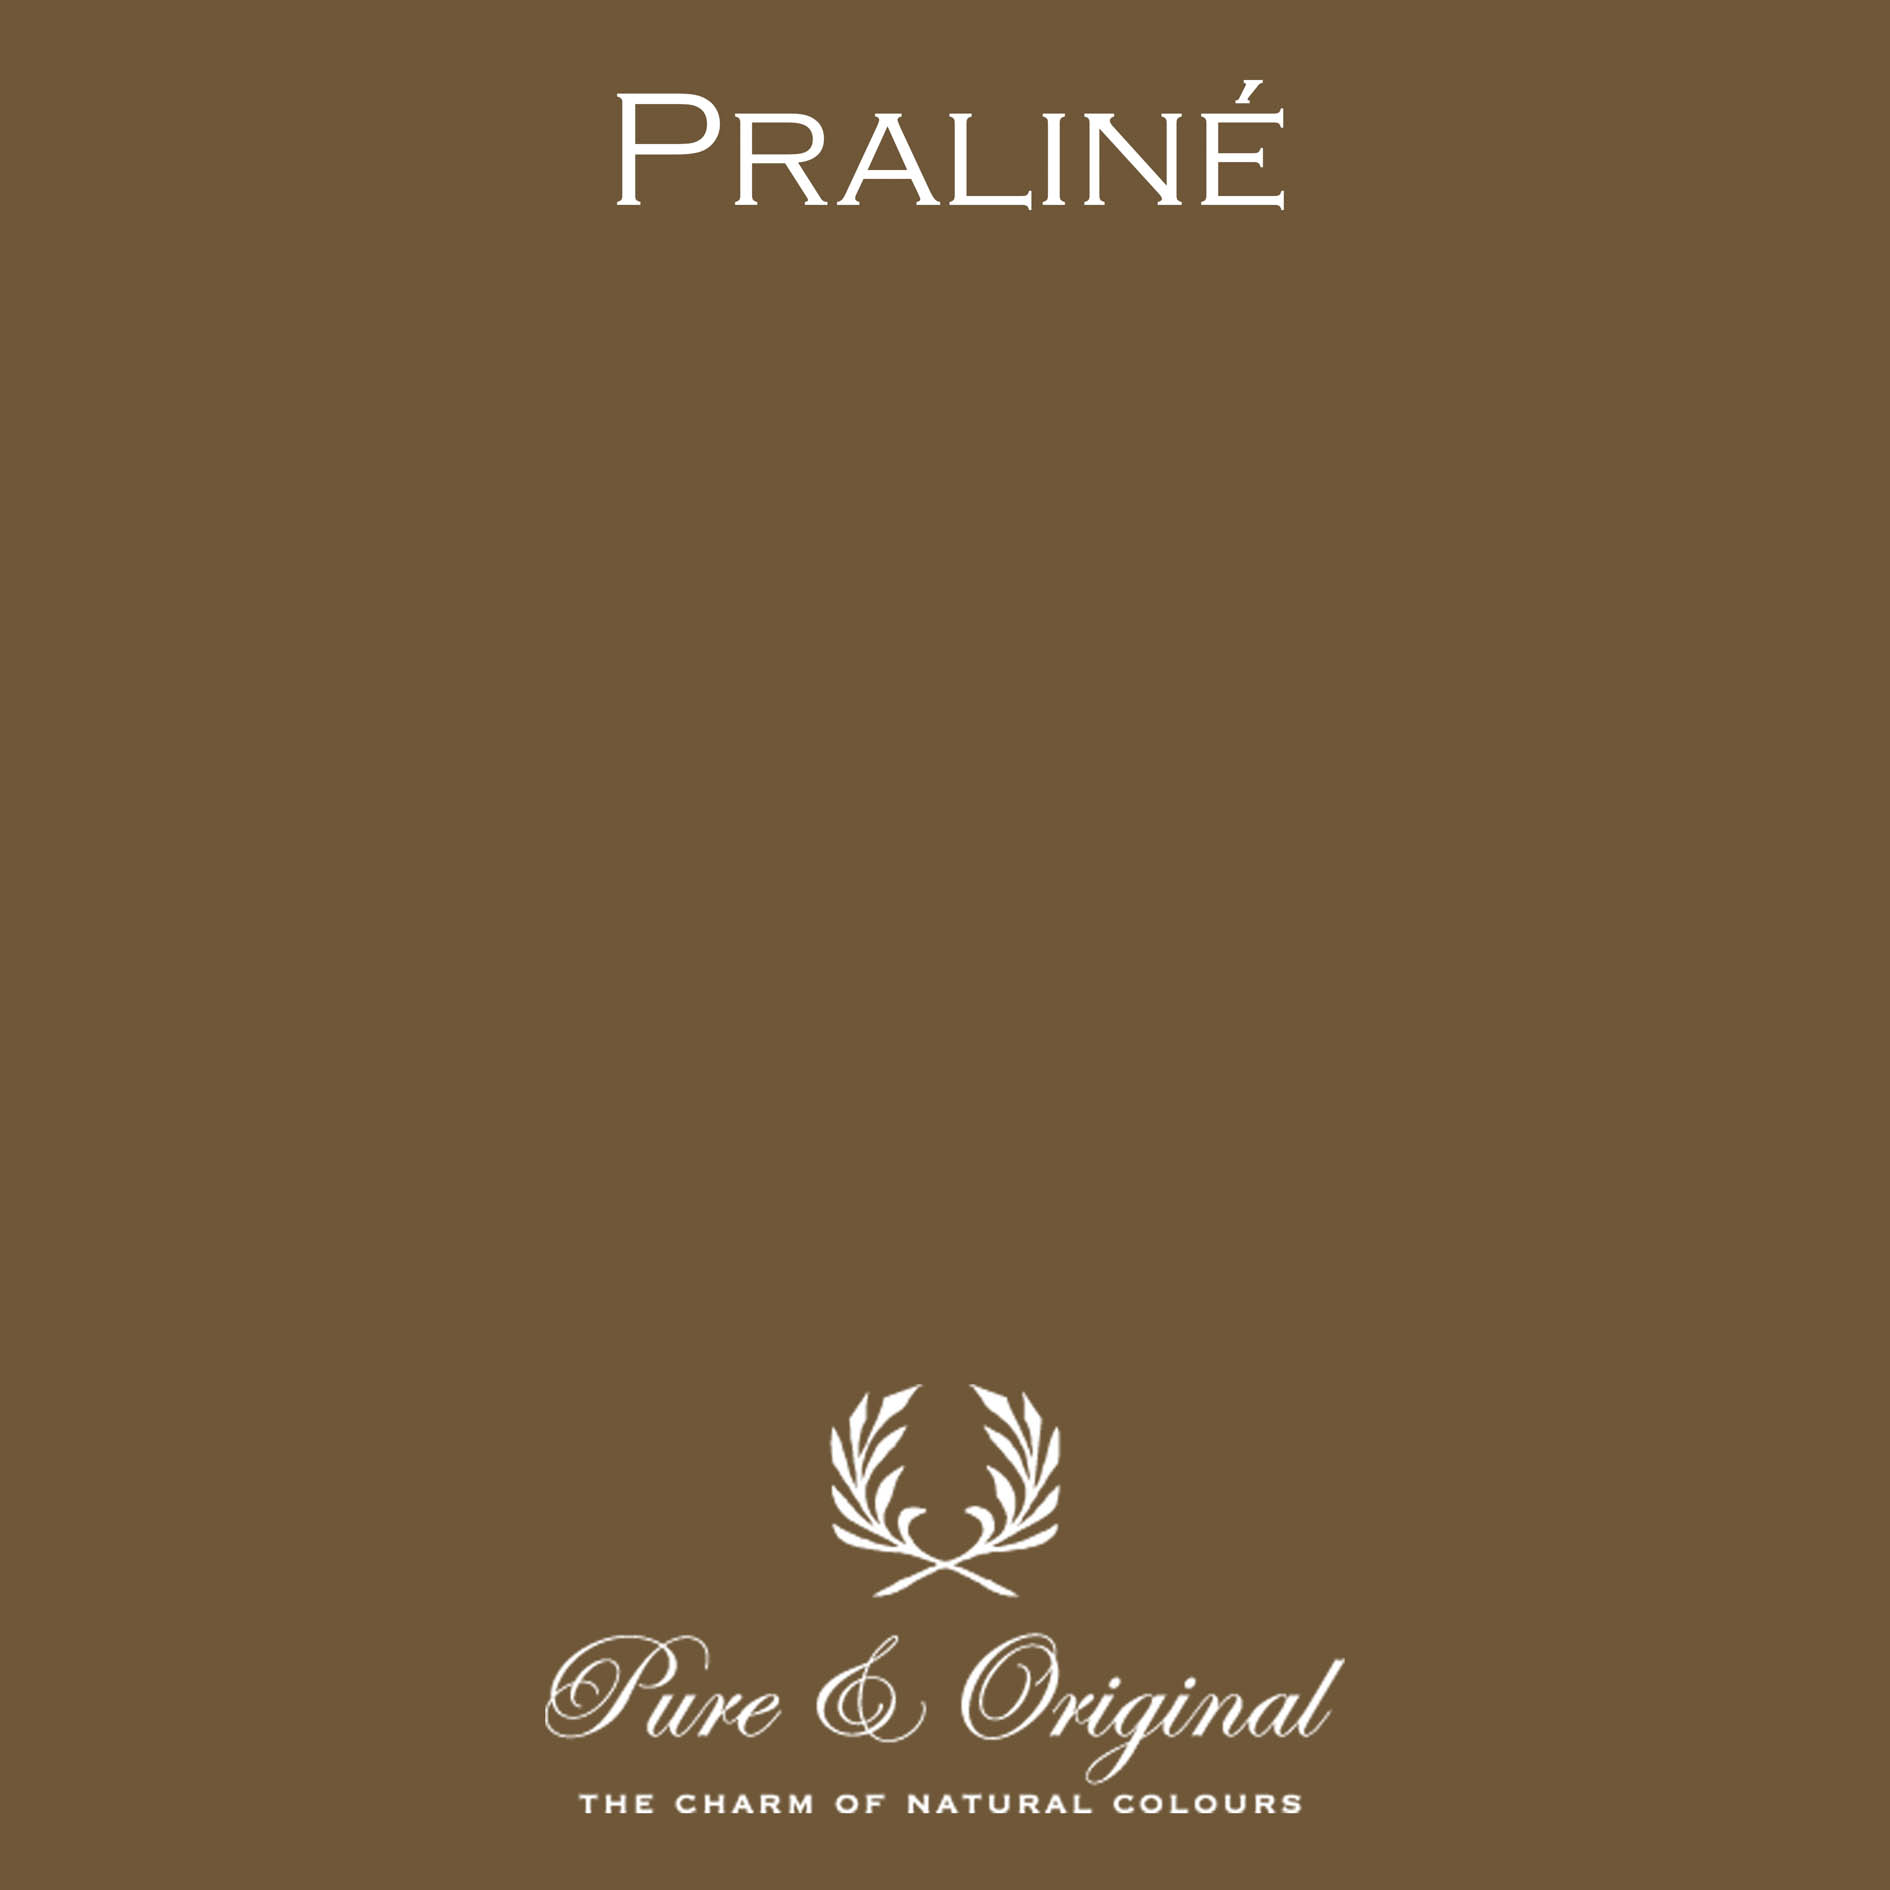 Pure & Original Praline